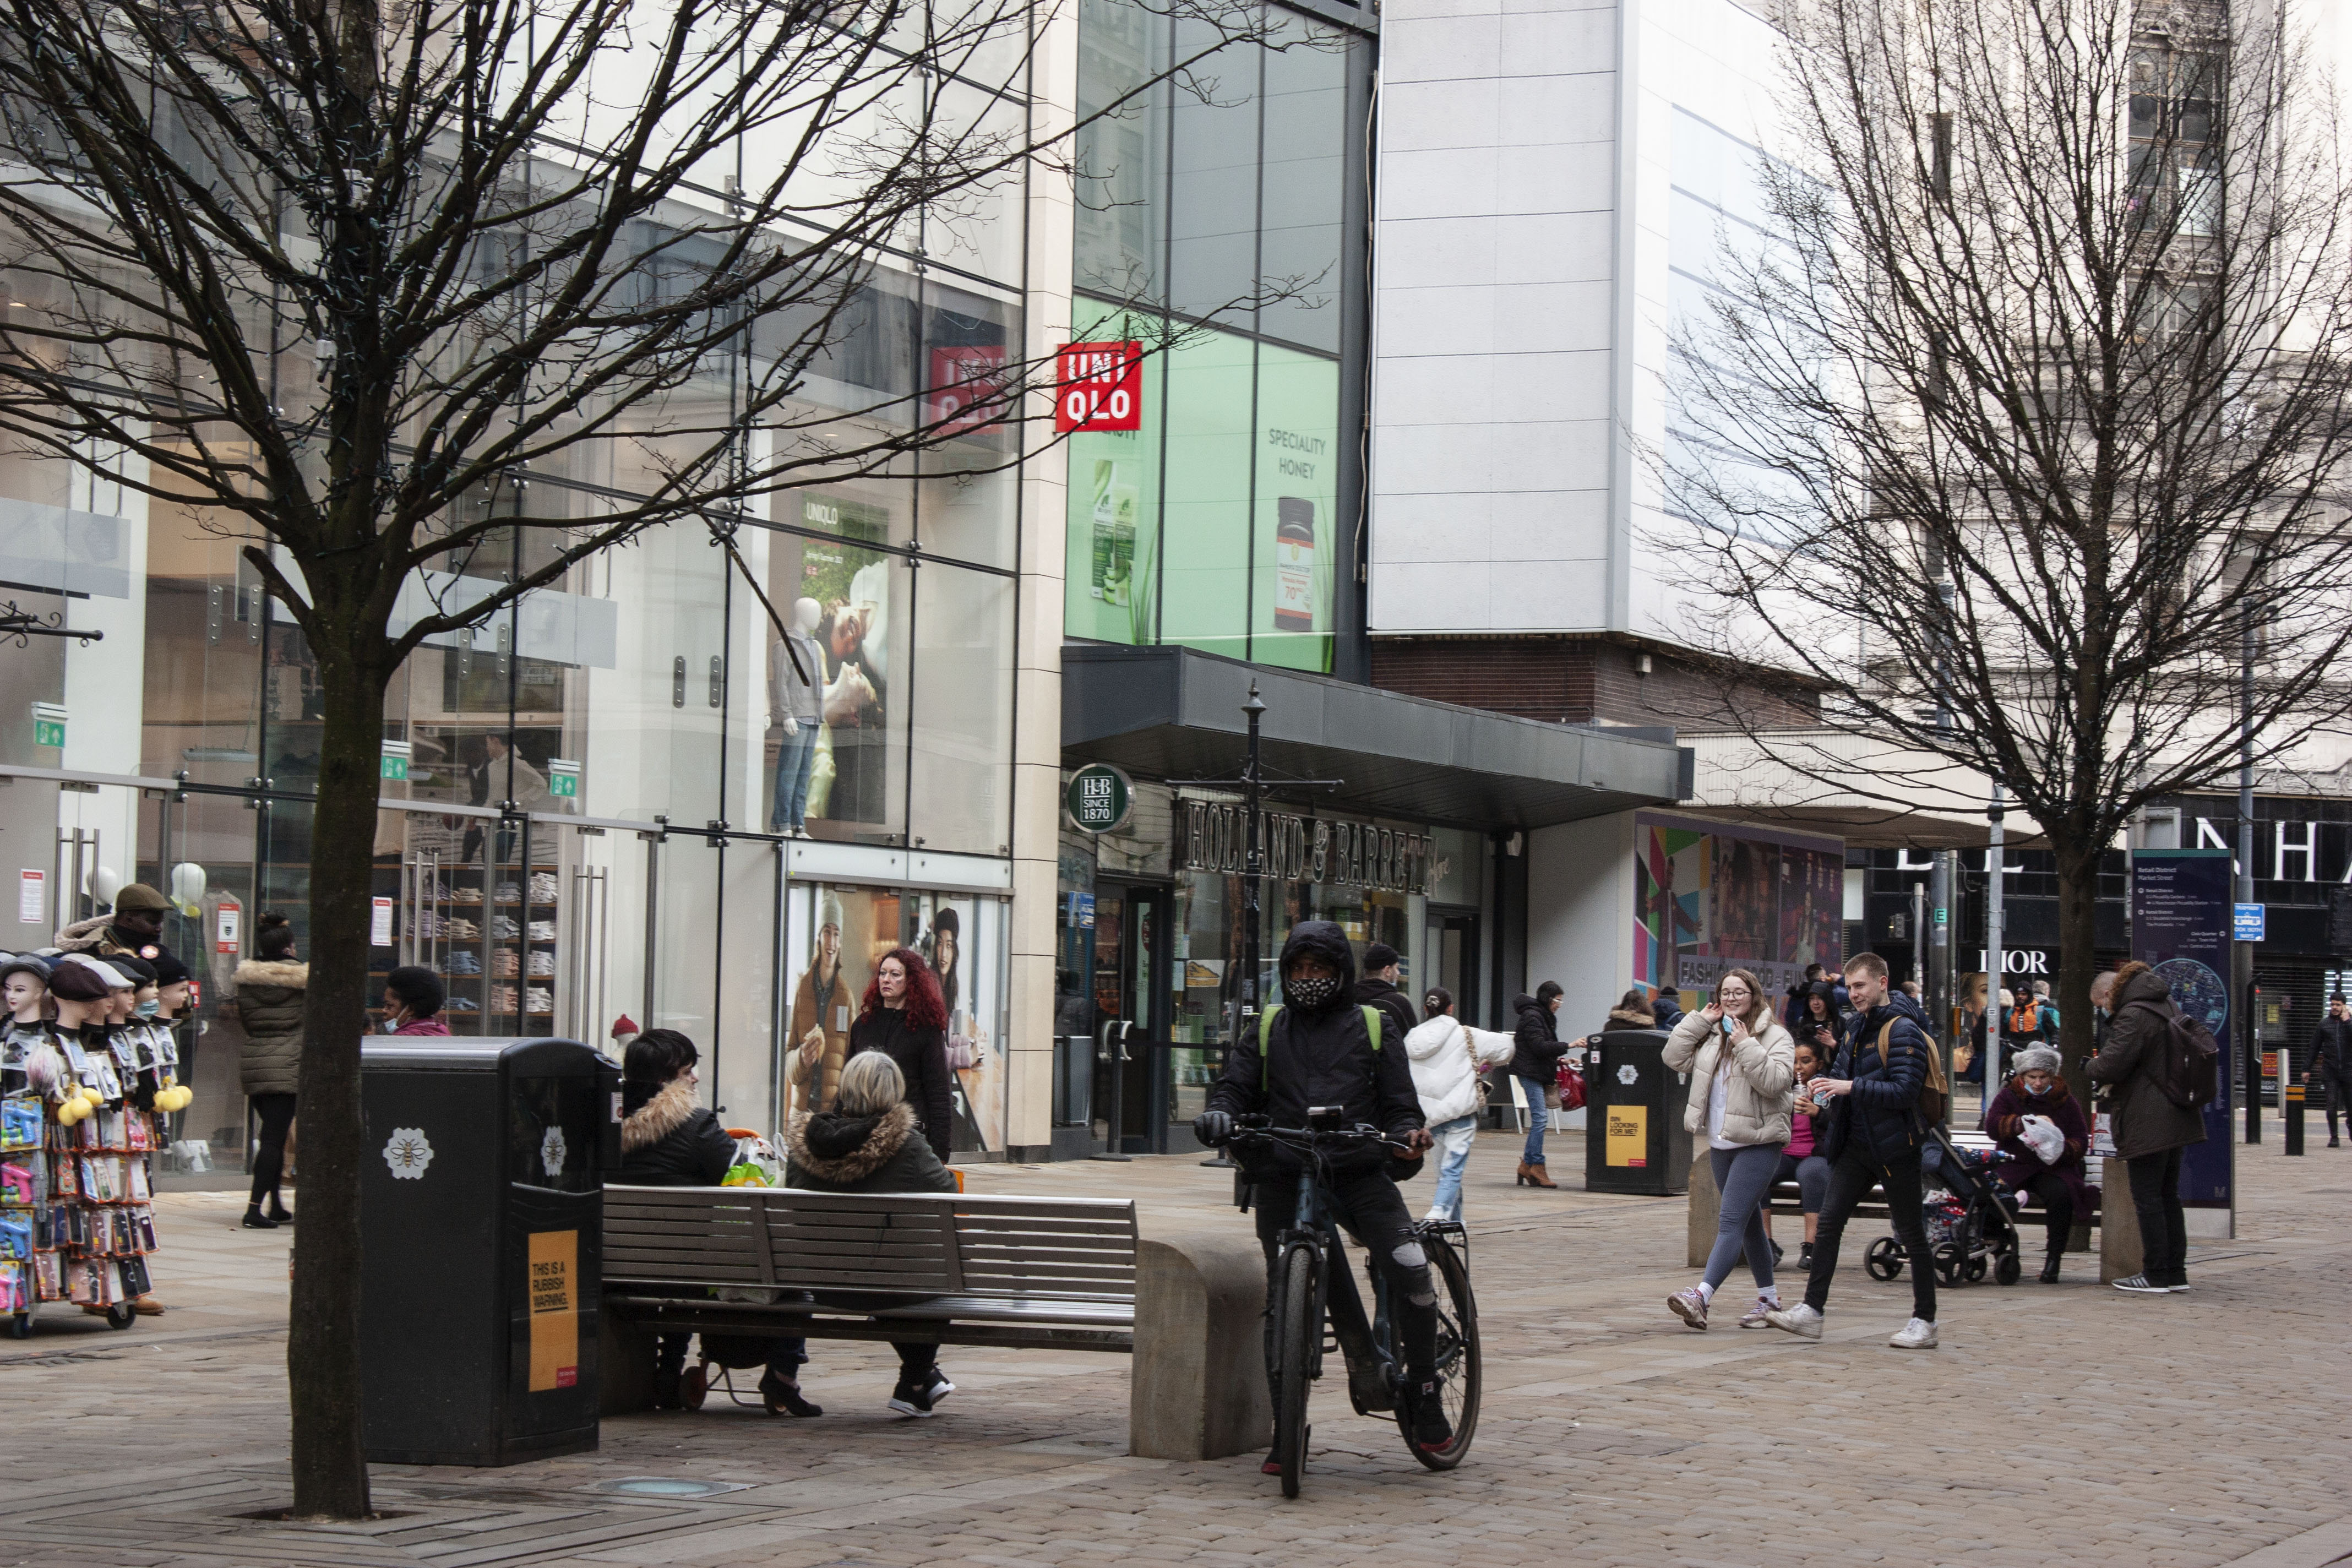 Public walking through busy city centre, man on bicycle as main subject